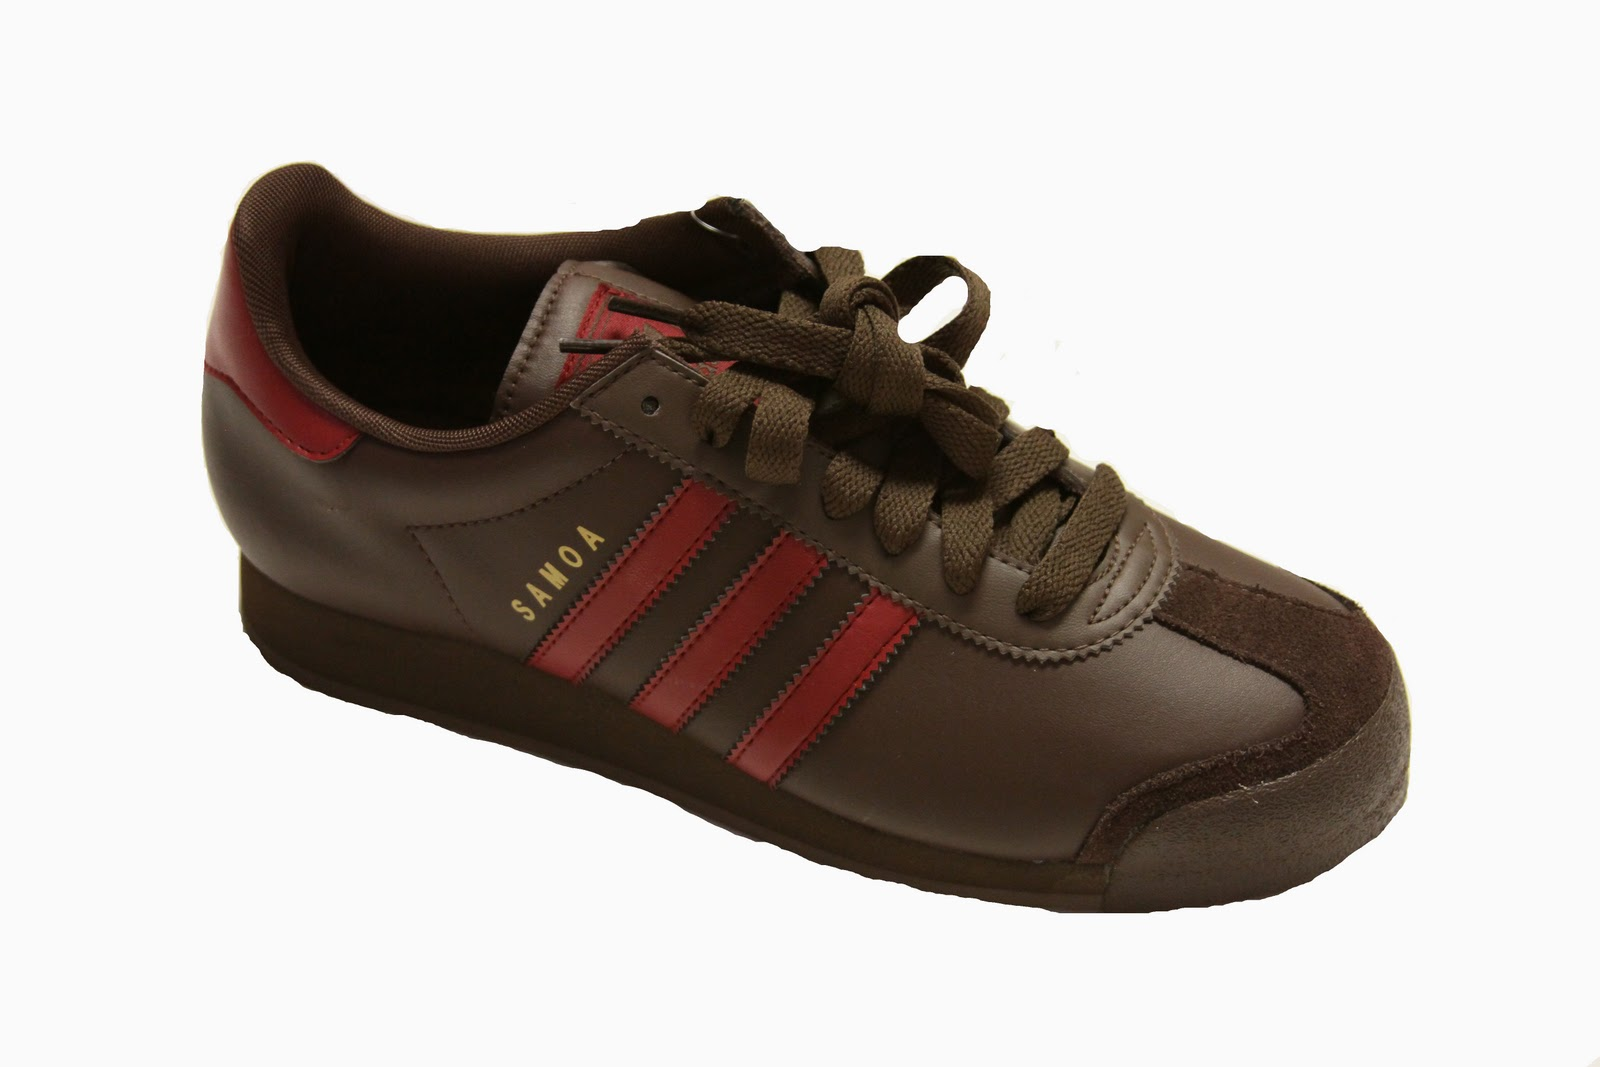 Gallery For > New Adidas Shoes Samoas